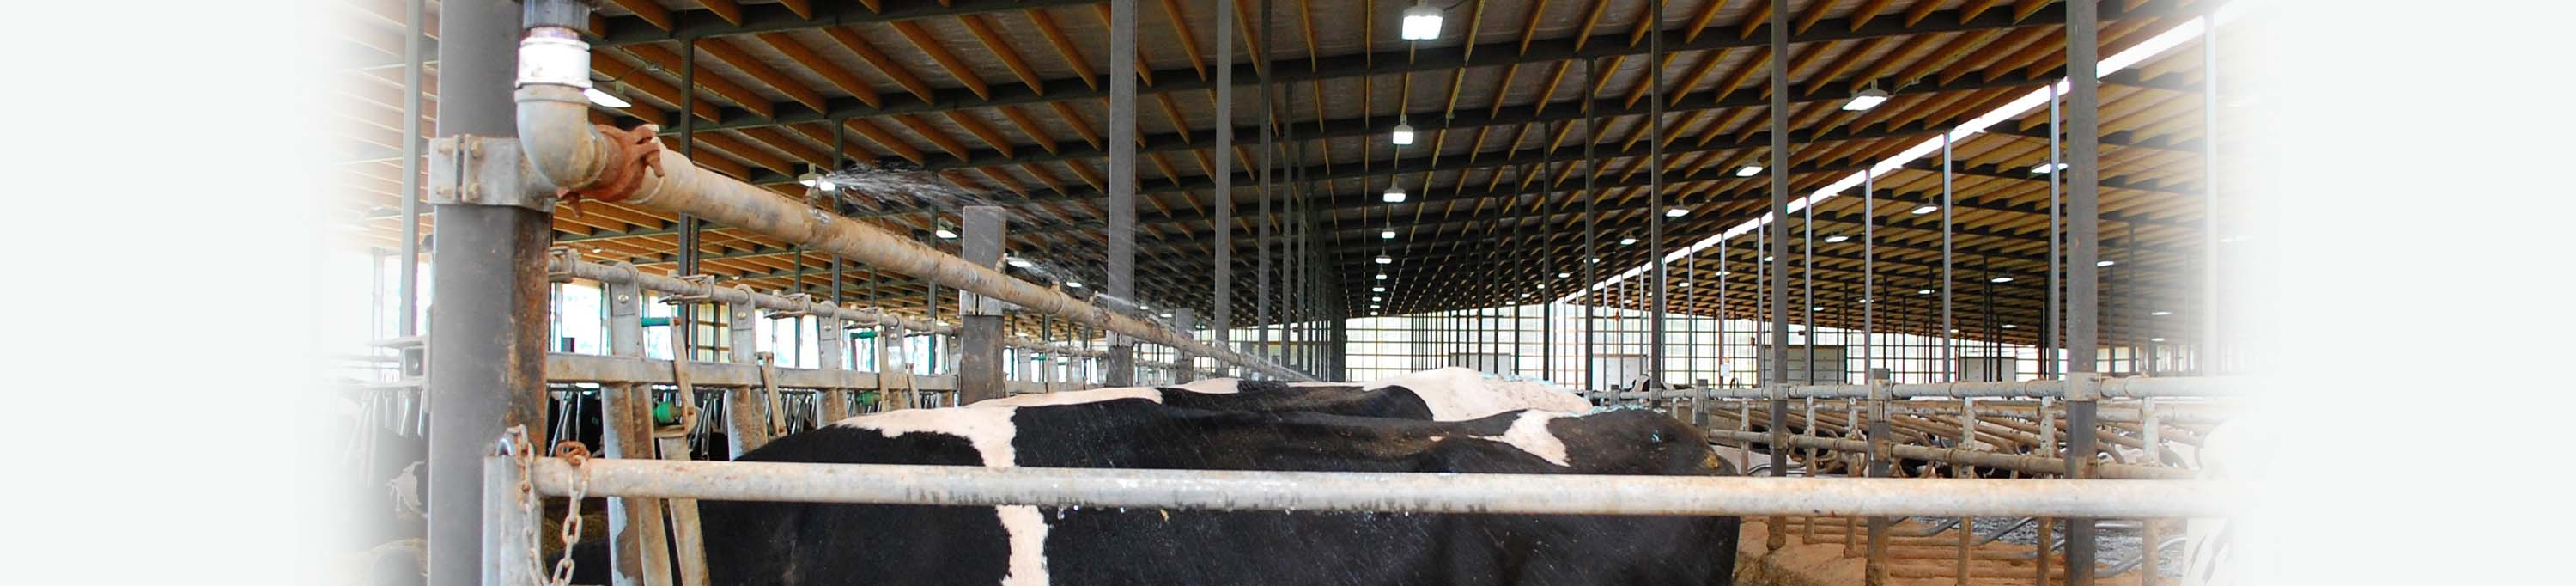 Cow Cooling Solutions | Artex Cow Comfort Solutions